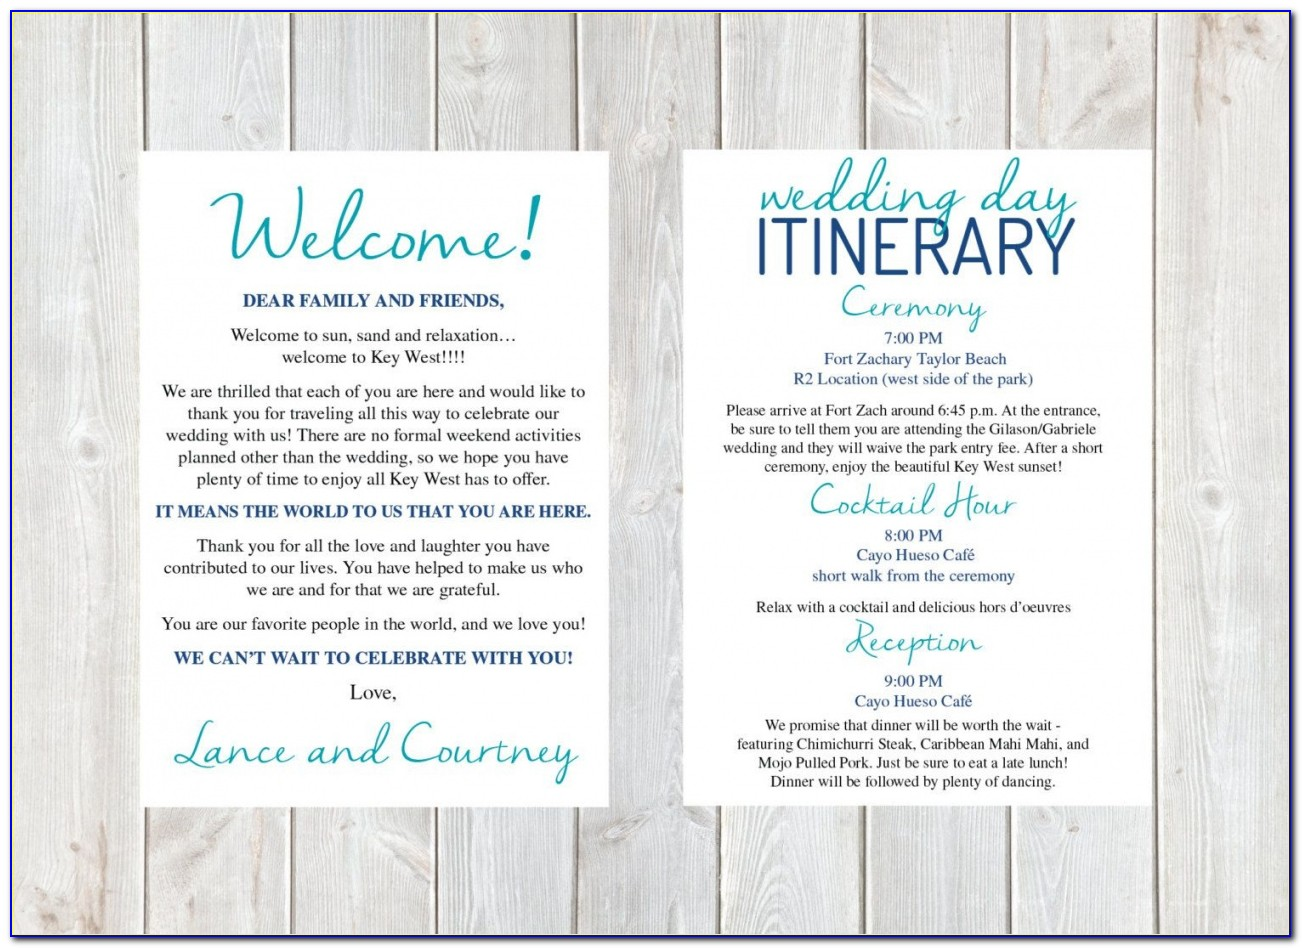 Free 001 Wedding Welcome Letter Template Itinerary Within ~ Ulyssesroom Destination Wedding Welcome Letter Template Pdf